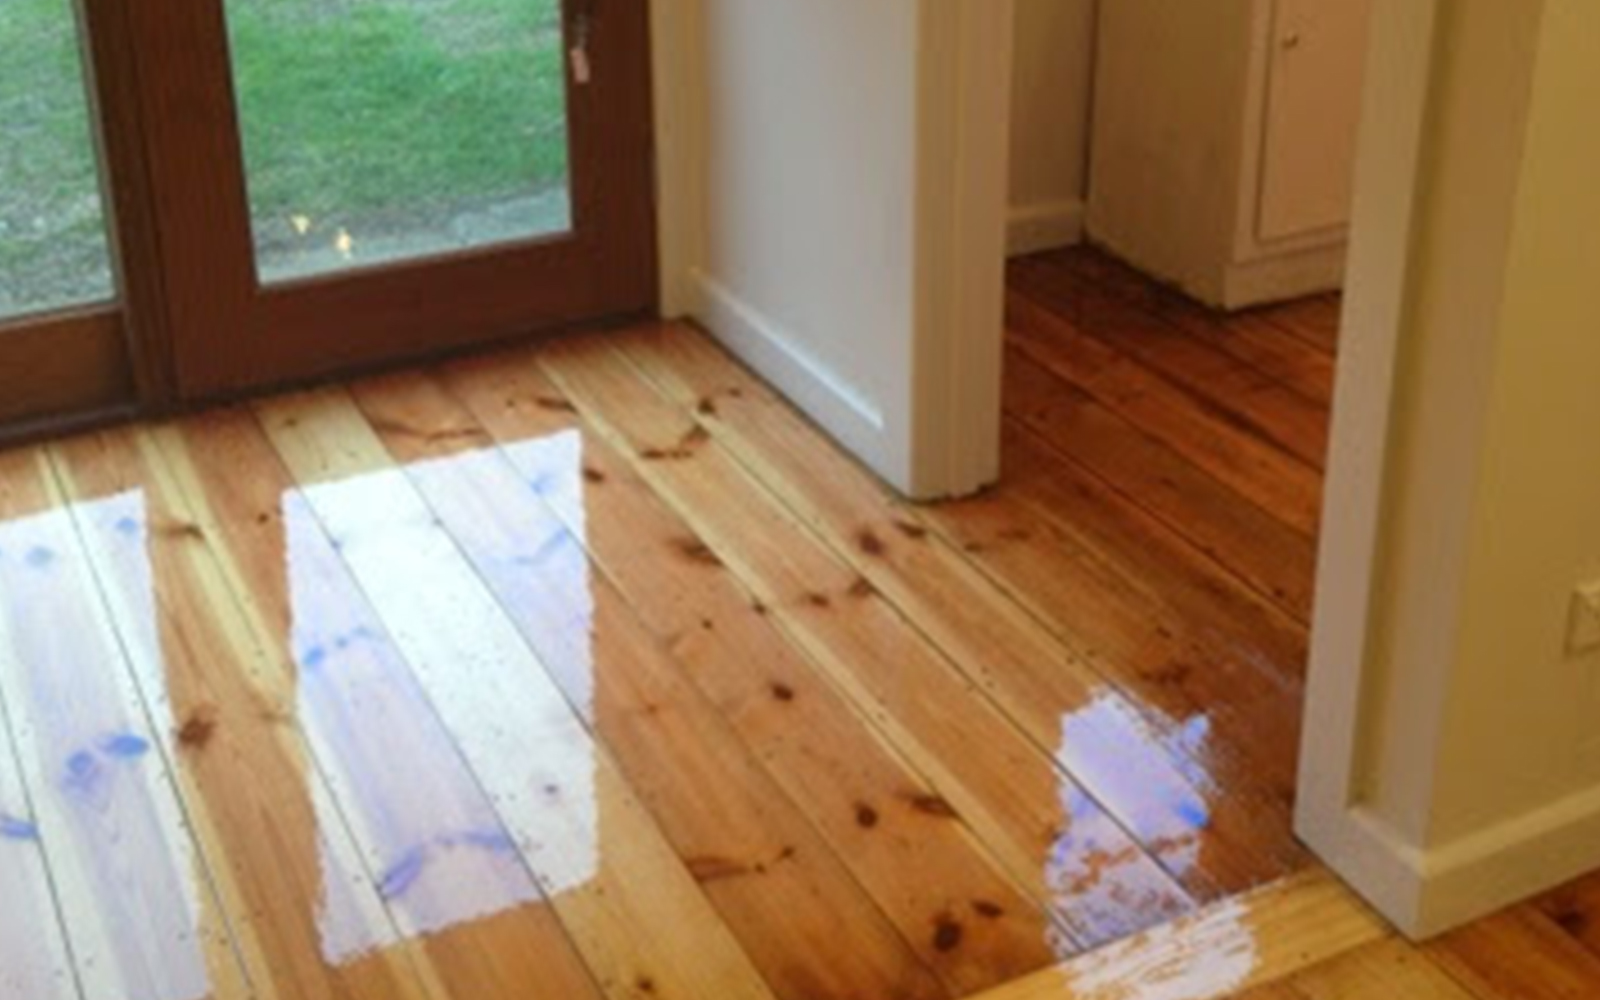 Removing Floor Covering And Polishing